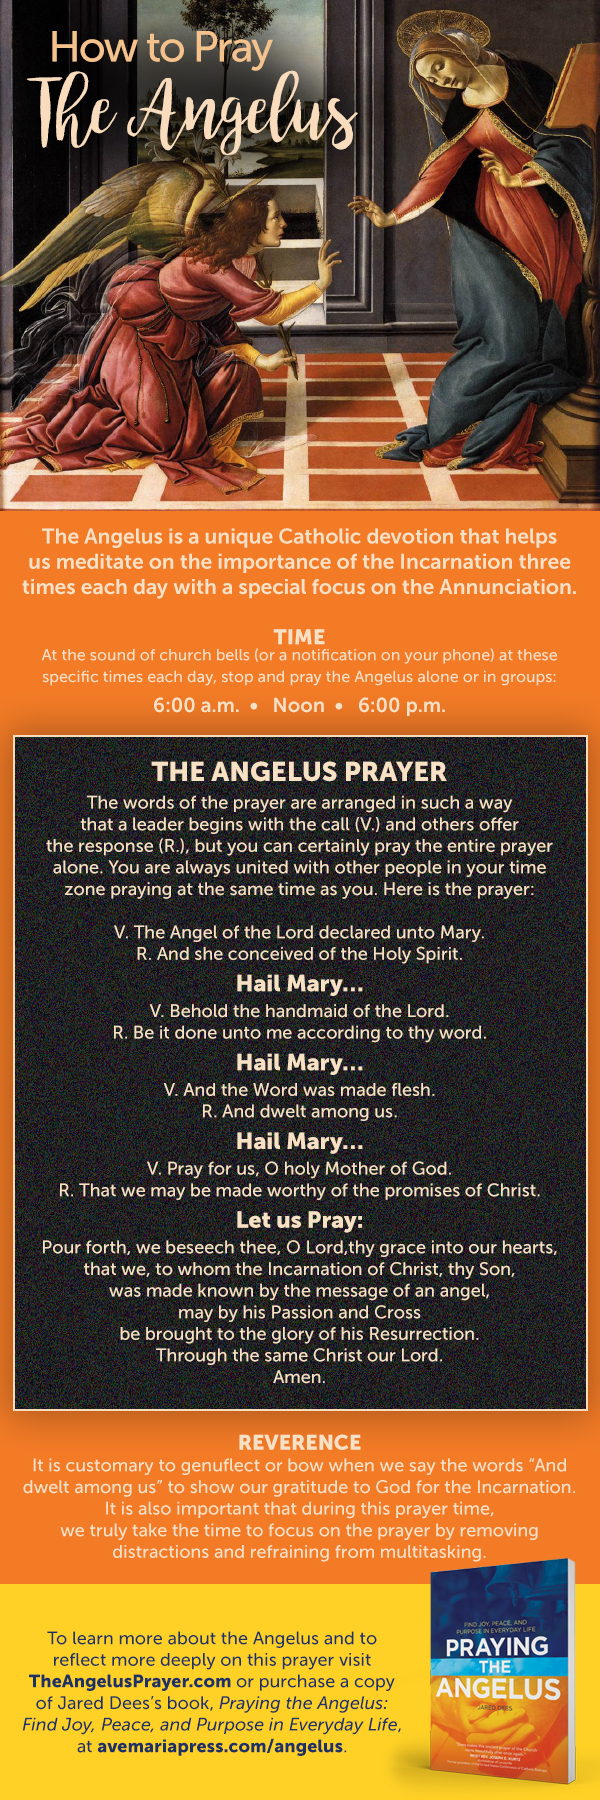 How to Pray the Angelus